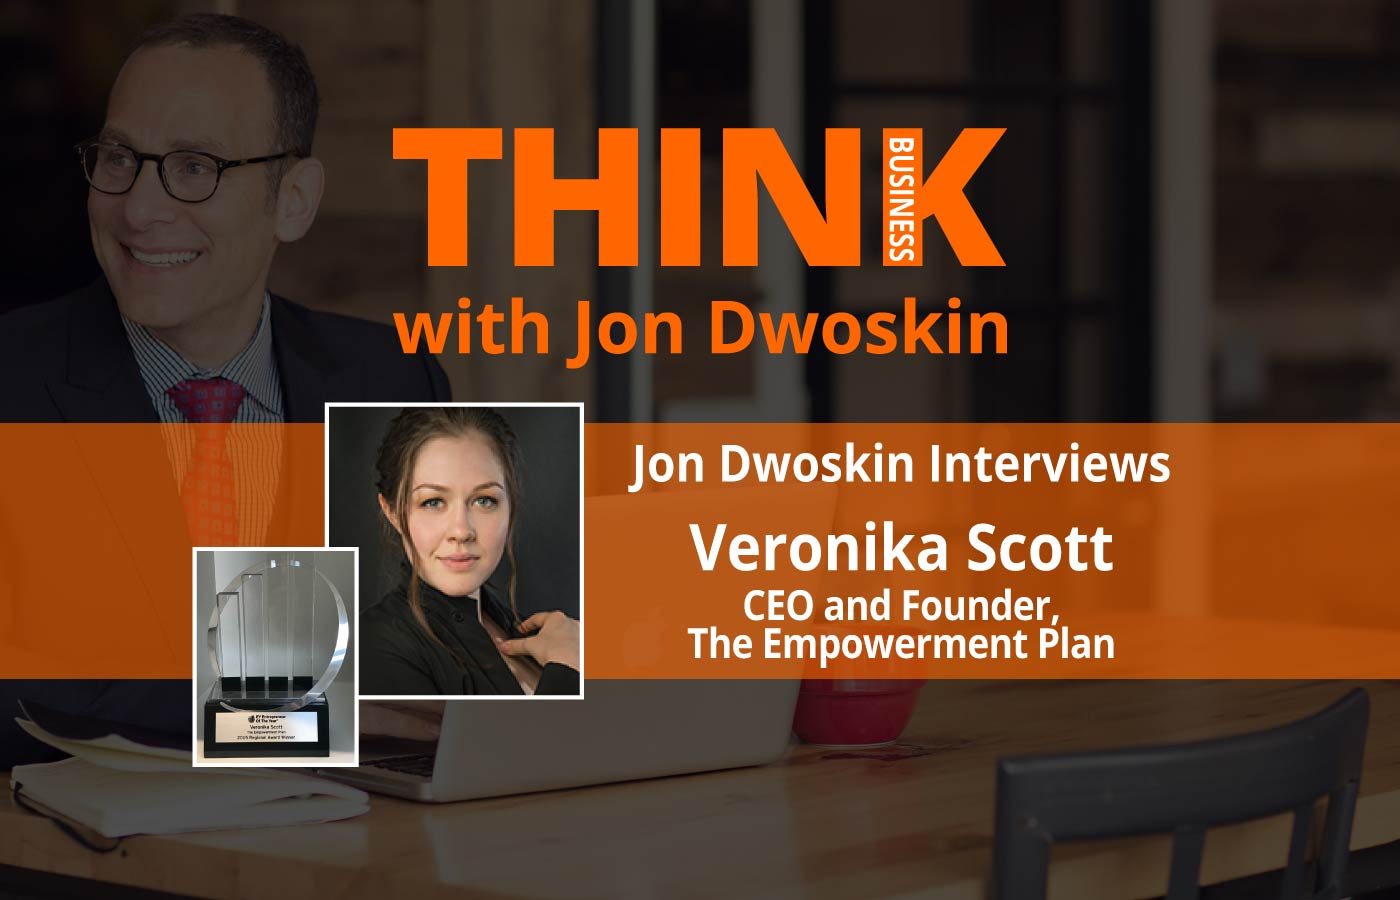 THINK Business: Jon Dwoskin Interviews Veronika Scott, CEO and Founder of The Empowerment Plan